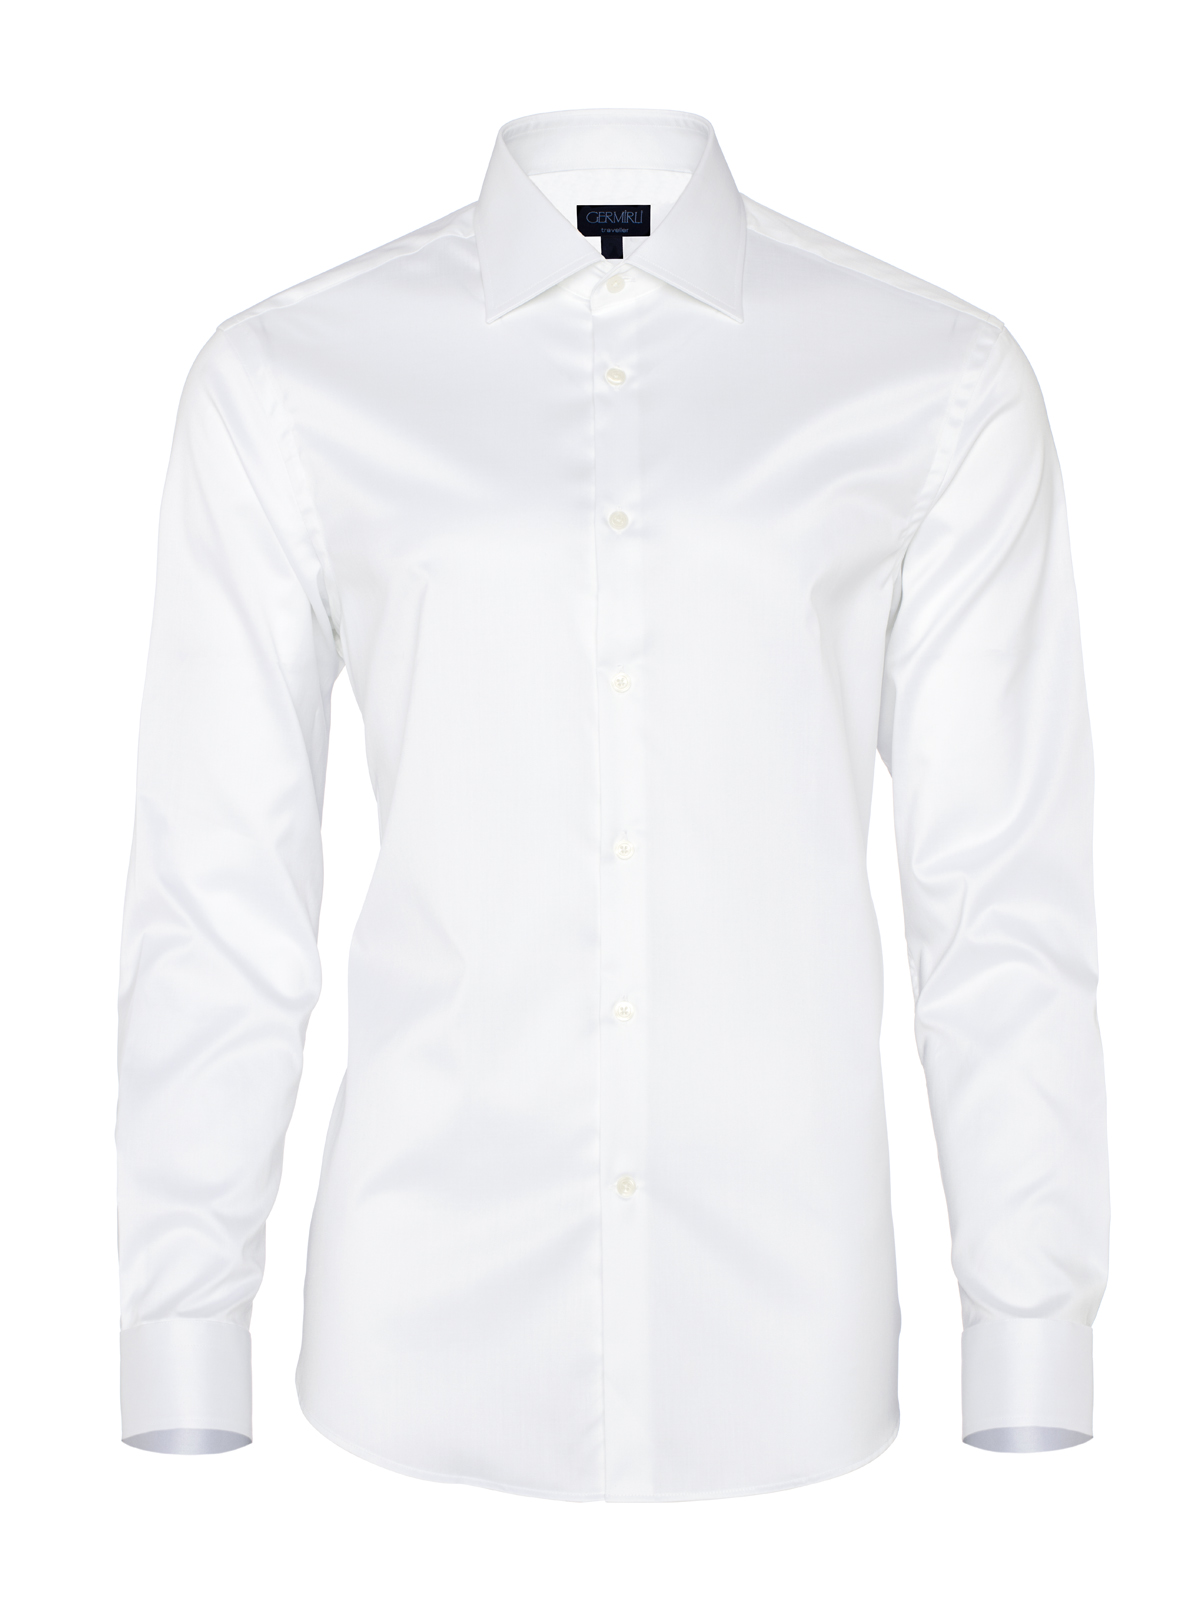 Germirli Non Iron White Twill Tailor Fit Shirt